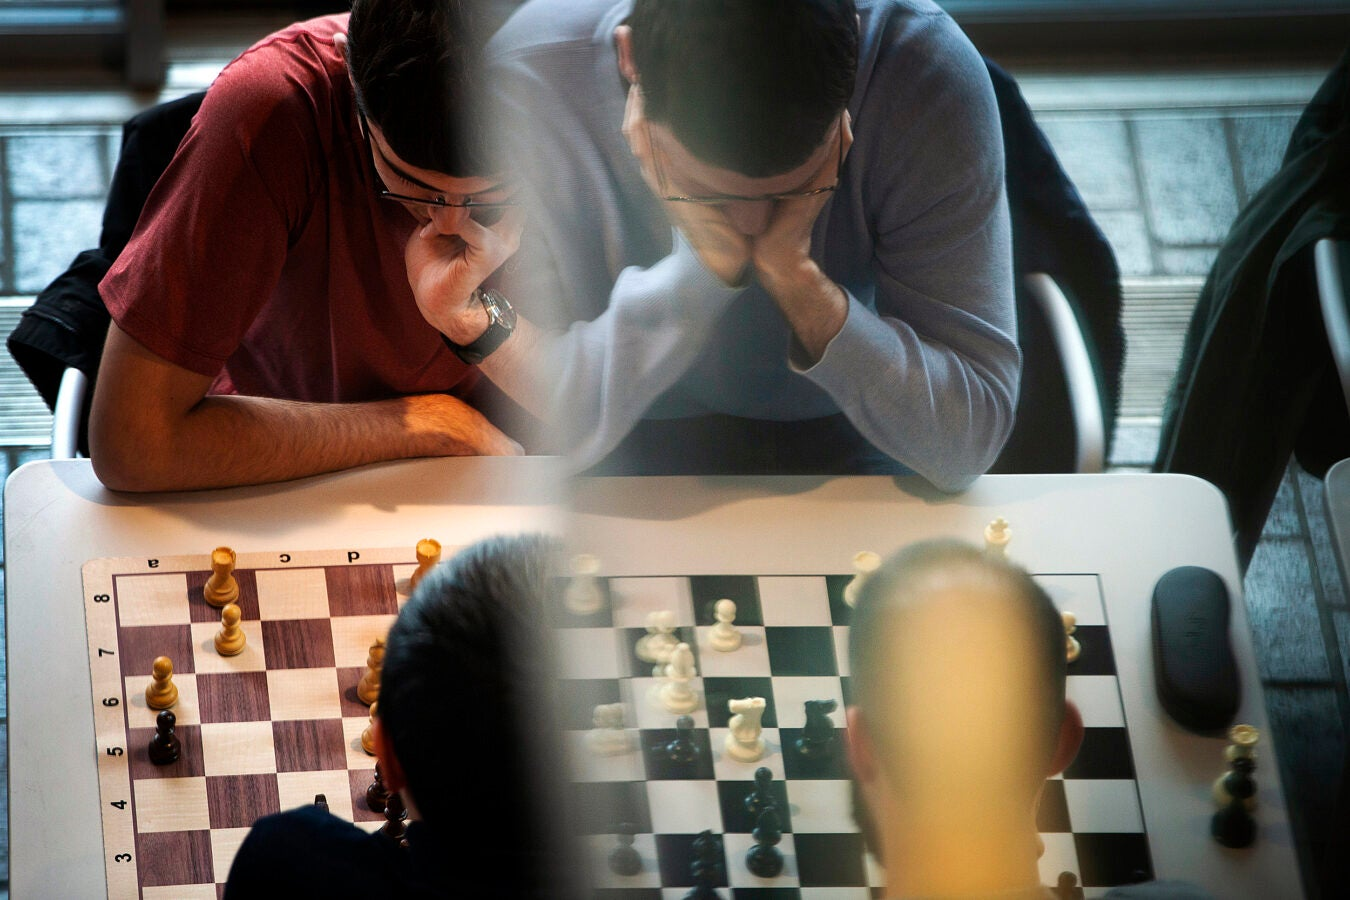 People playing chess.